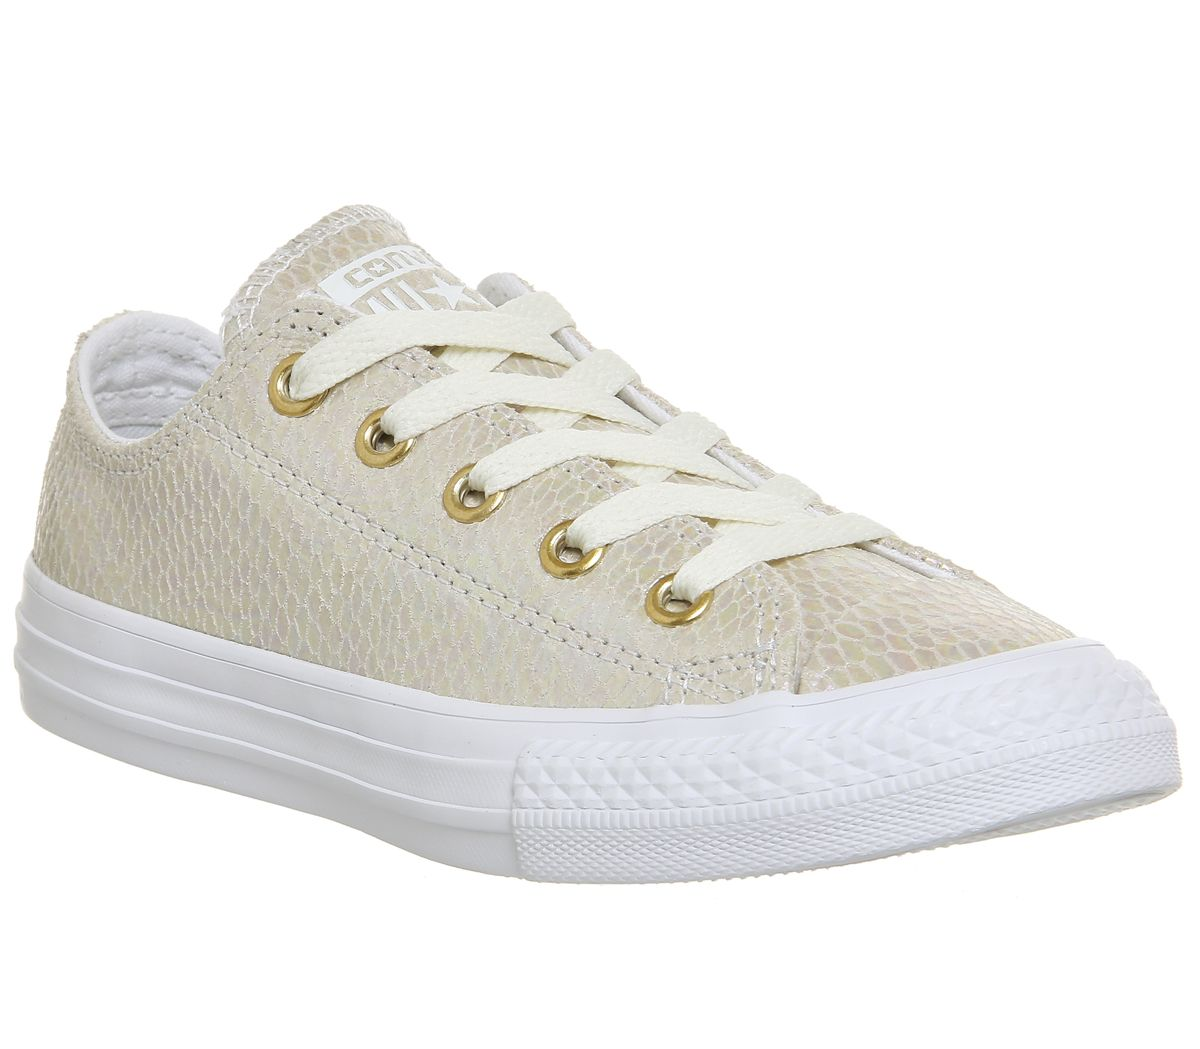 405ac6593c5157 Converse All Star Ox Leather Kids White Snake Iridescent Exclusive ...